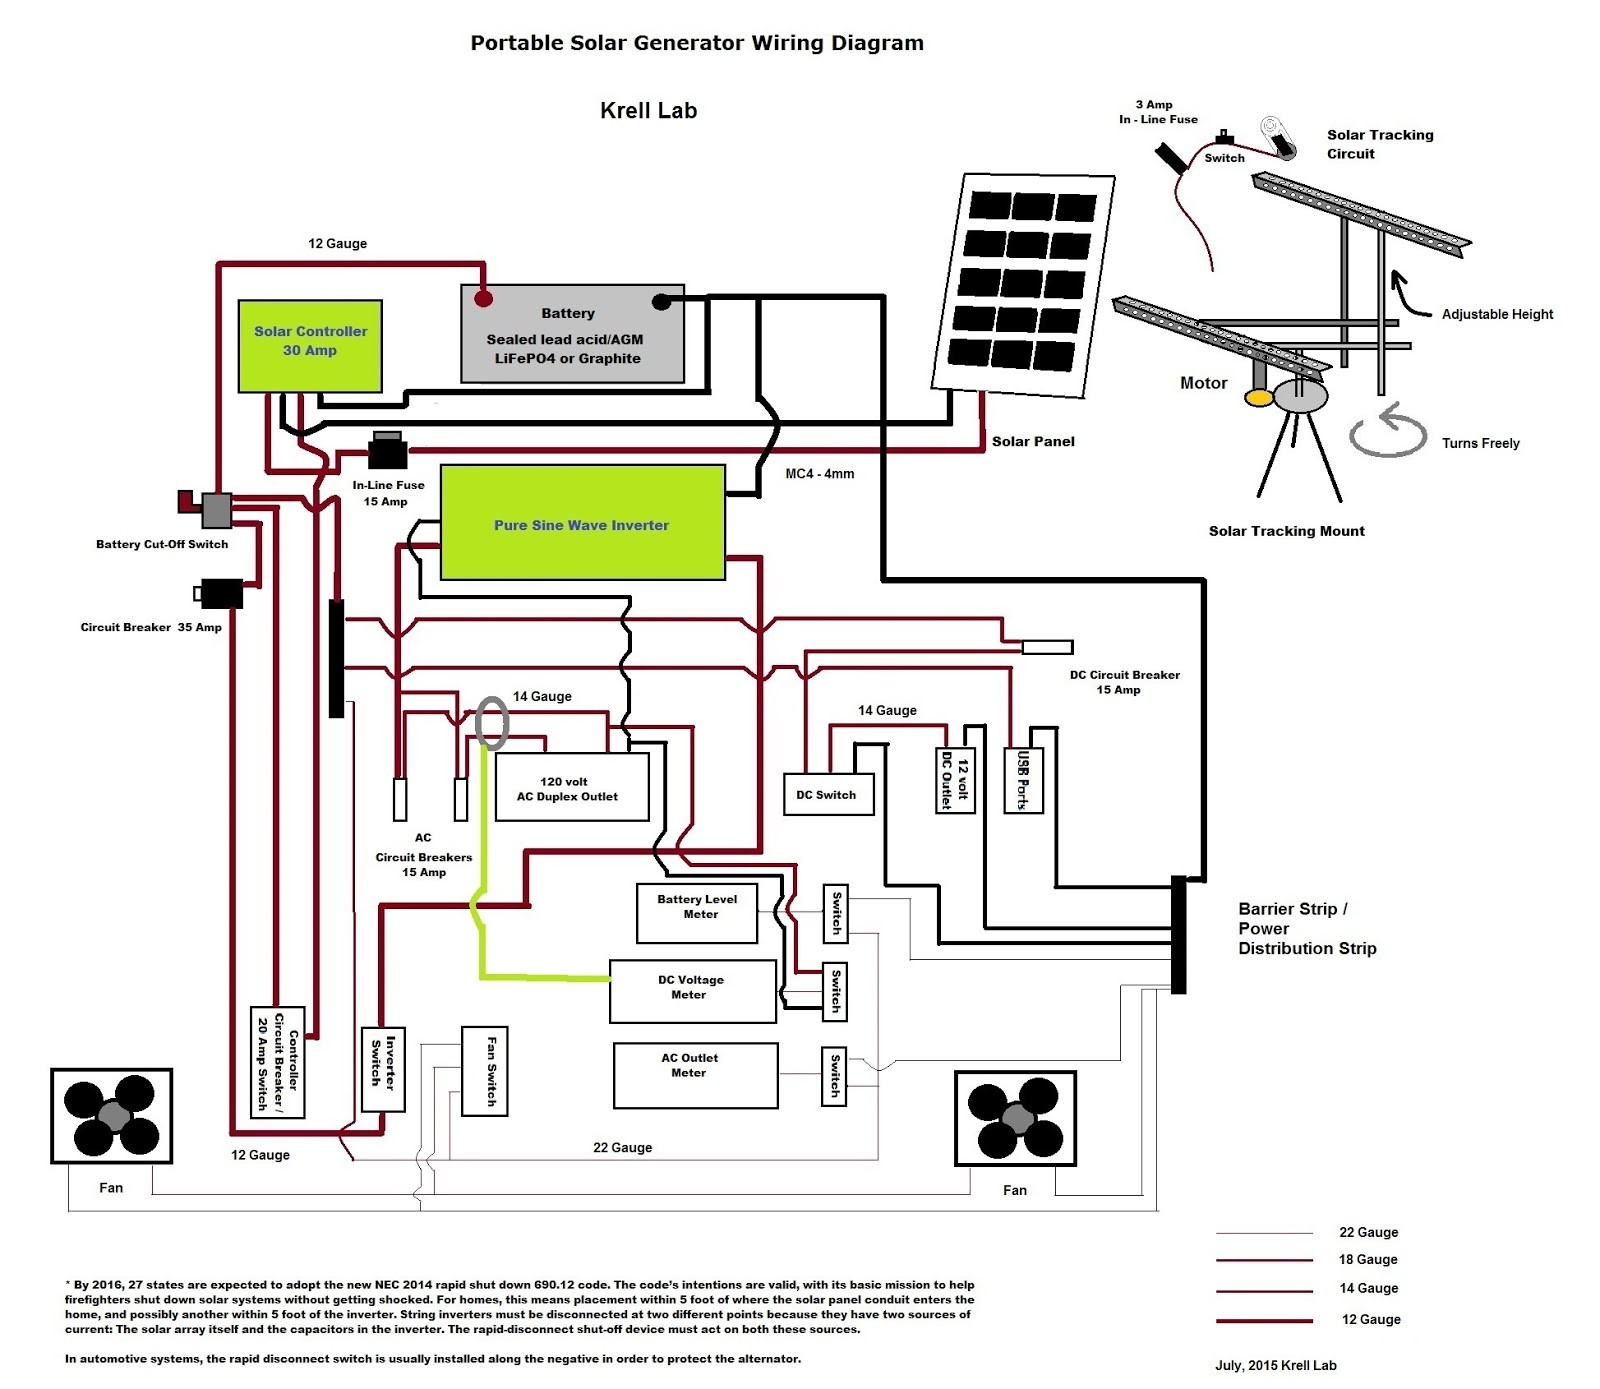 wiring diagram for solar panel to battery collection. Black Bedroom Furniture Sets. Home Design Ideas